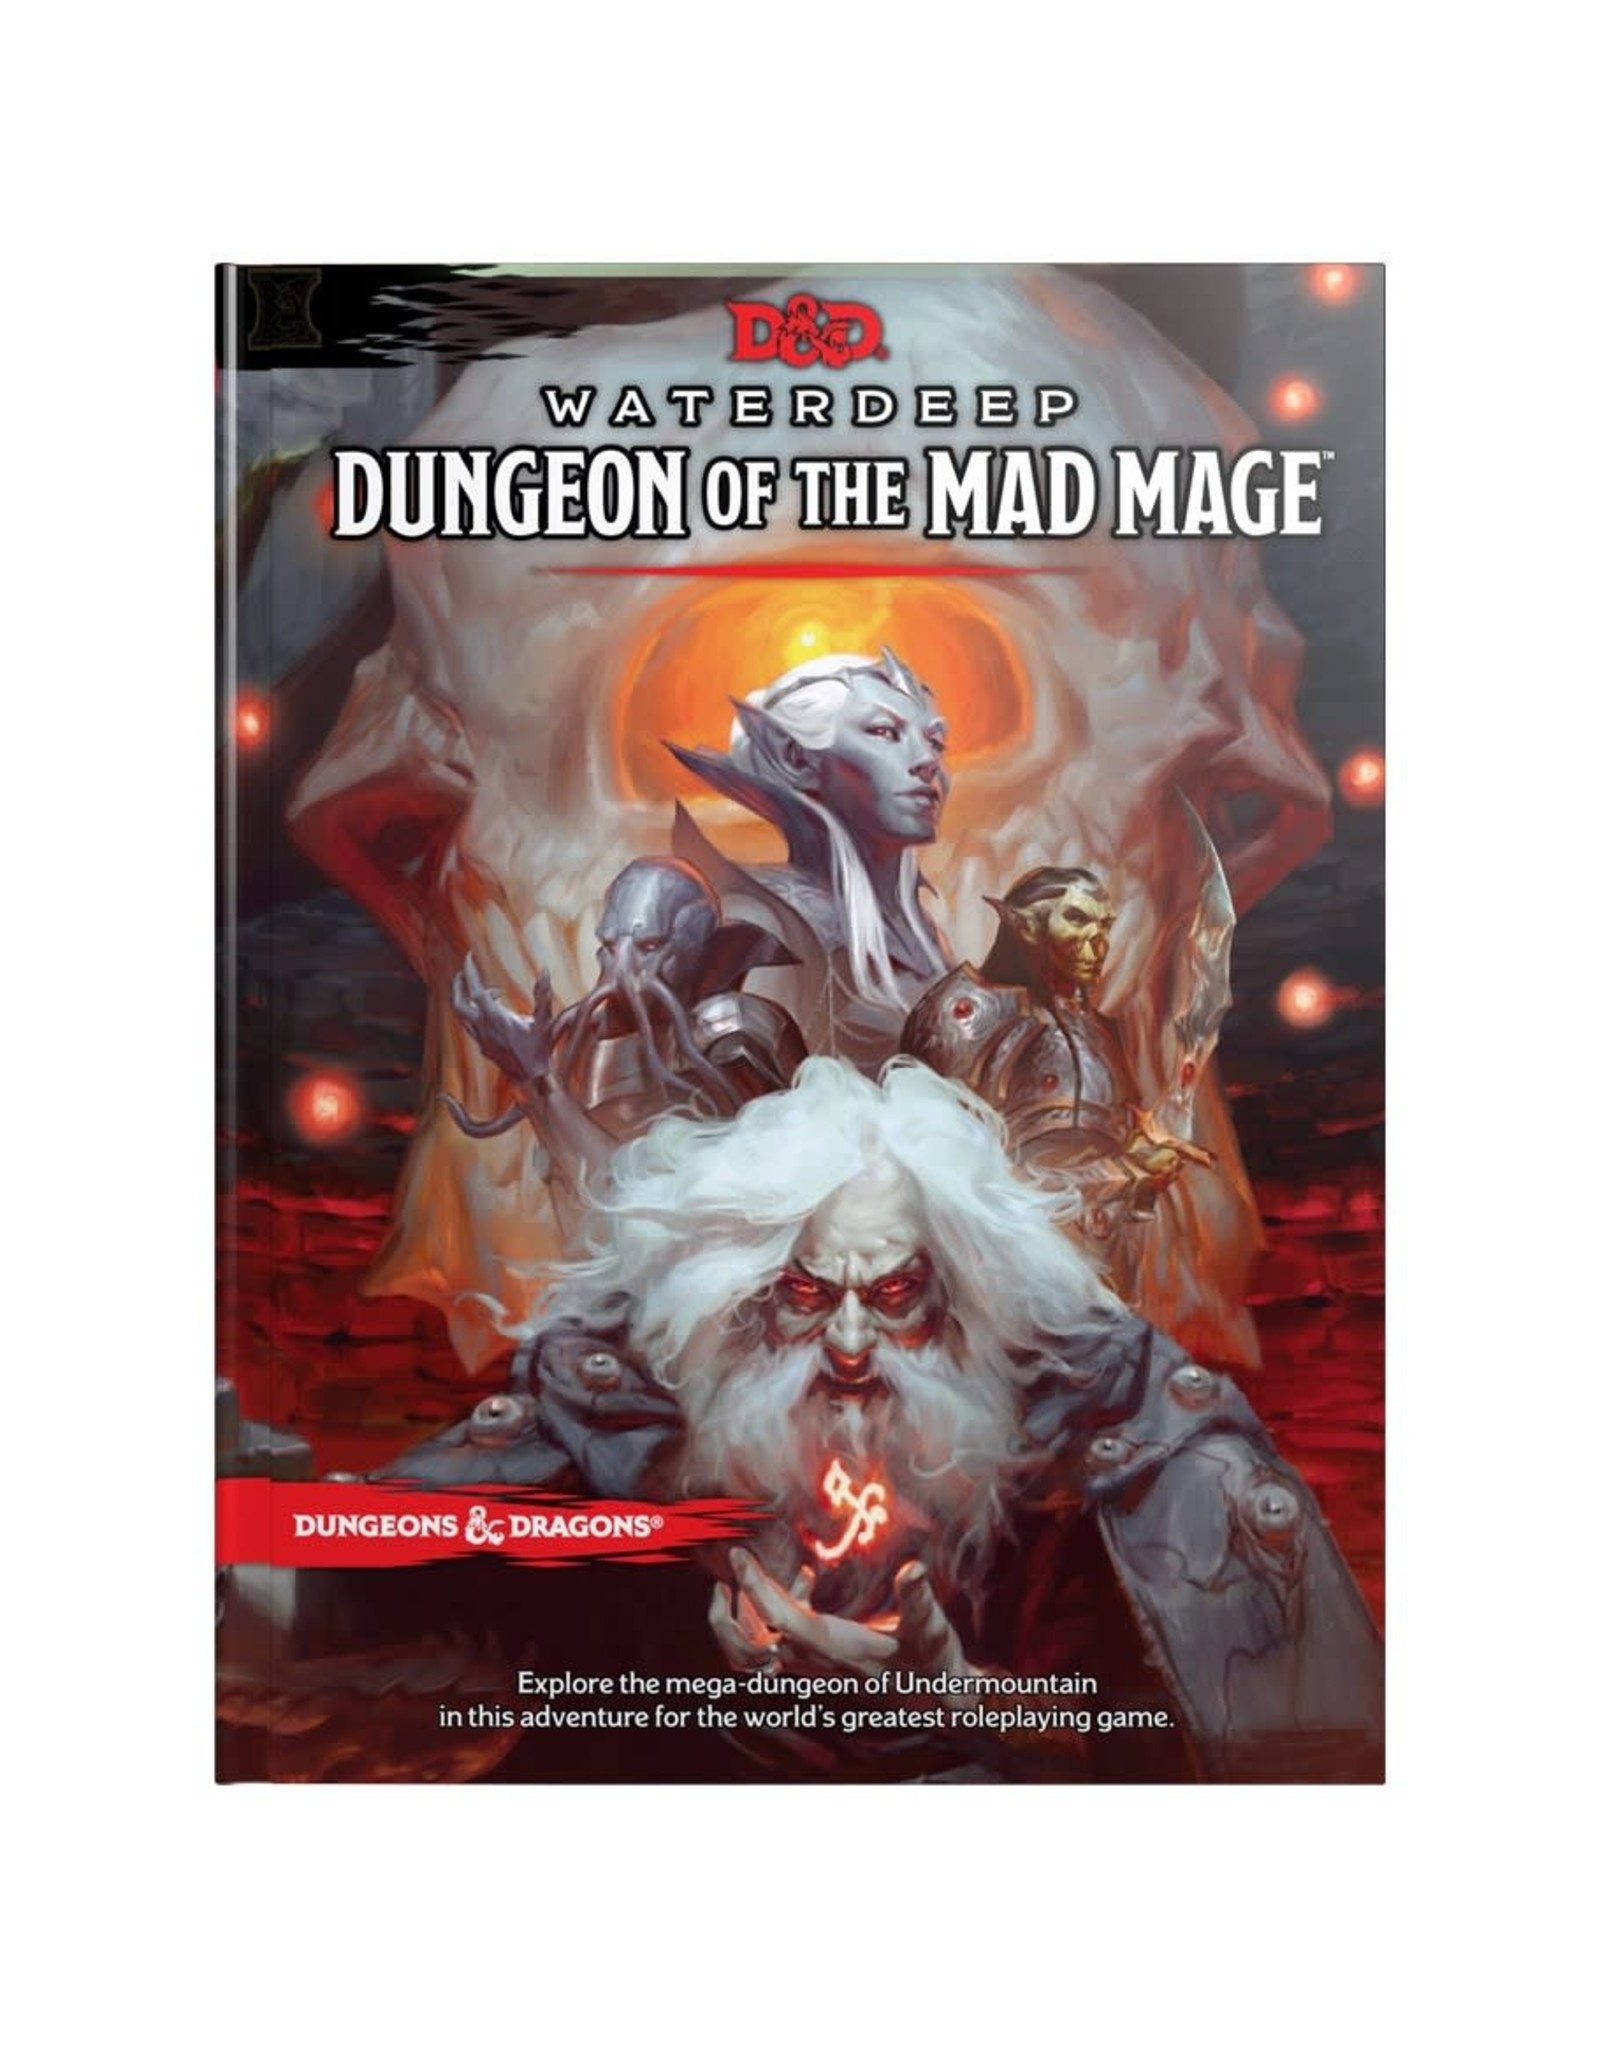 Dungeons & Dragons Waterdeep - Dungeon of the Mad Mage